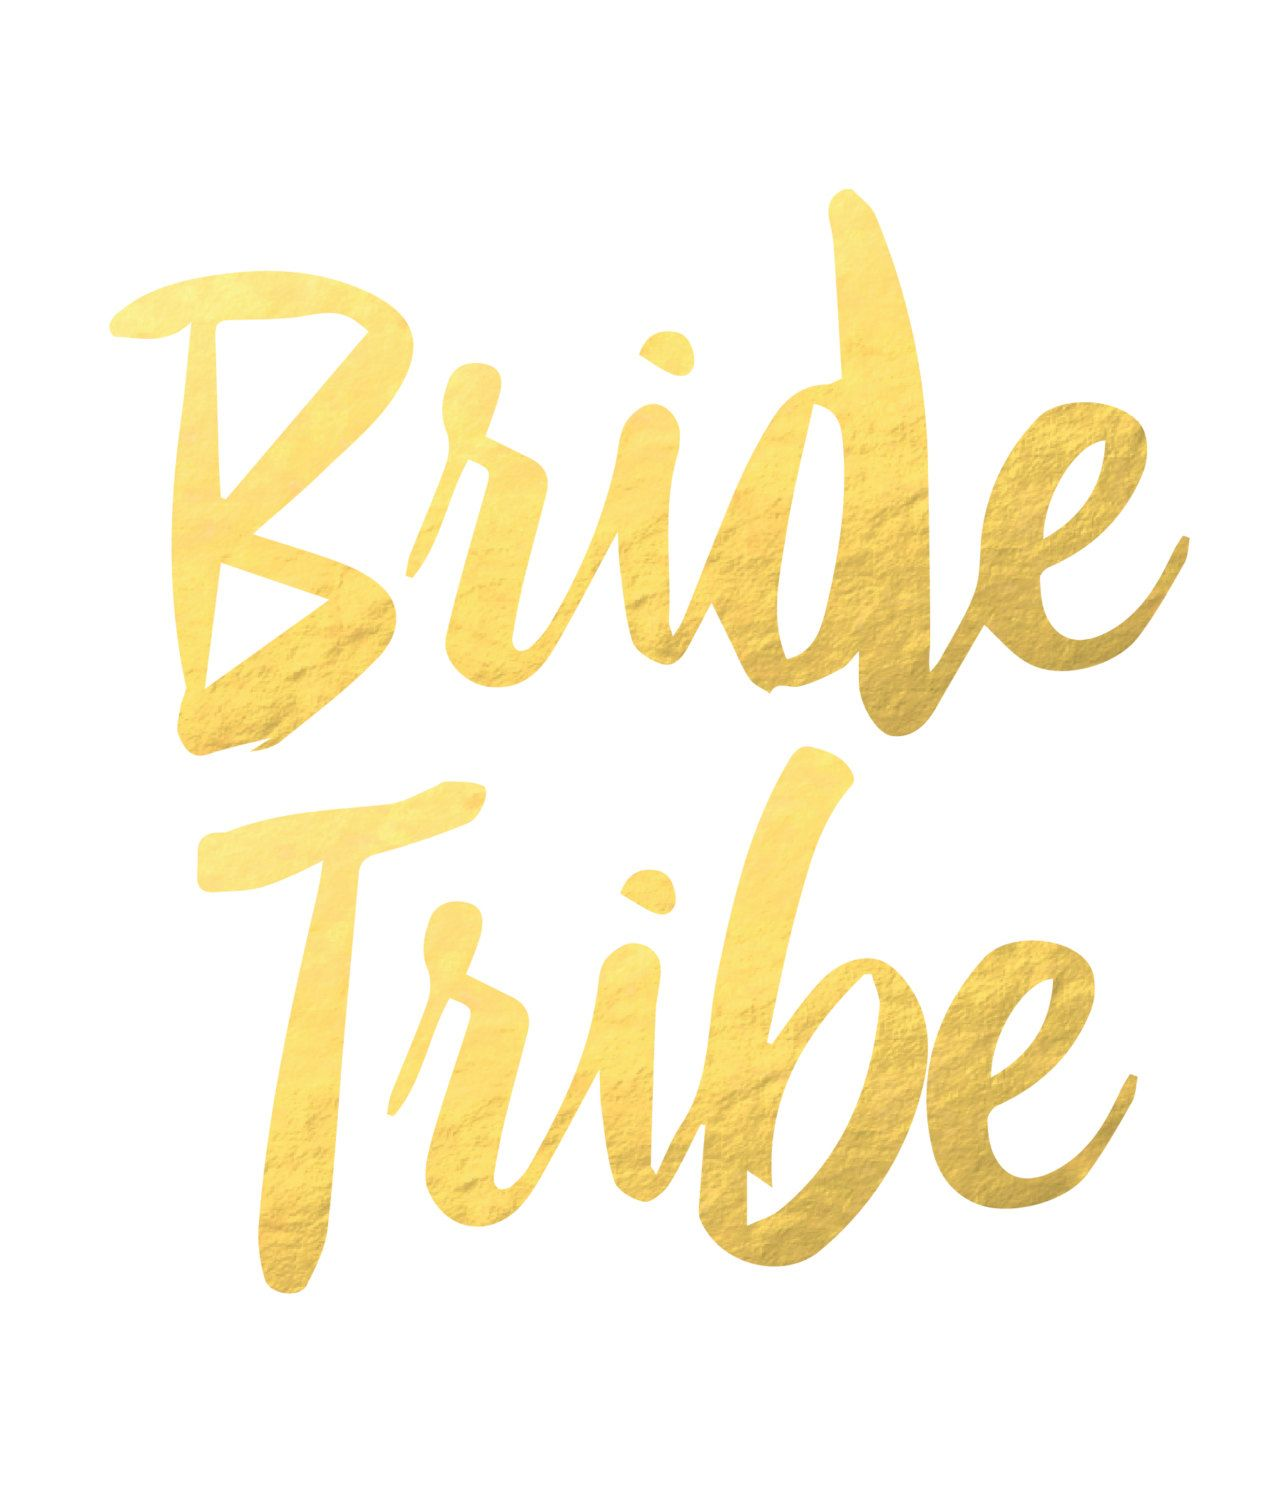 Bride Tribe Tattoo. Bachelorette Tattoo. Flash tattoo.